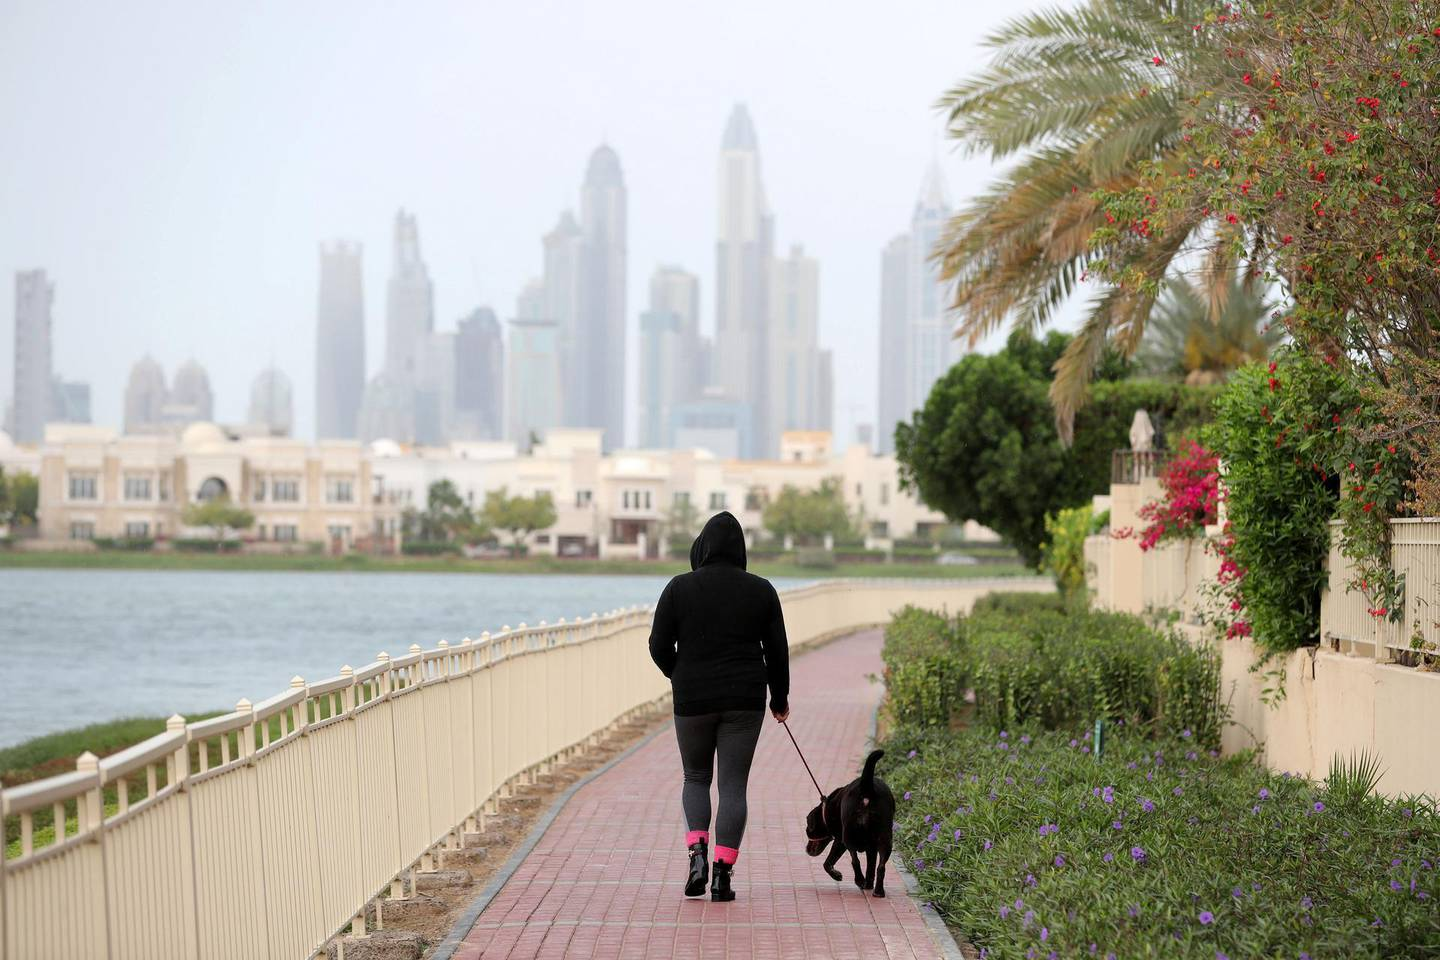 Dubai, United Arab Emirates - March 03, 2019: A woman walks her dog in the Springs as tight rain falls on a grey day in Dubai. Wednesday the 3rd of April 2019. The Springs, Dubai. Chris Whiteoak / The National